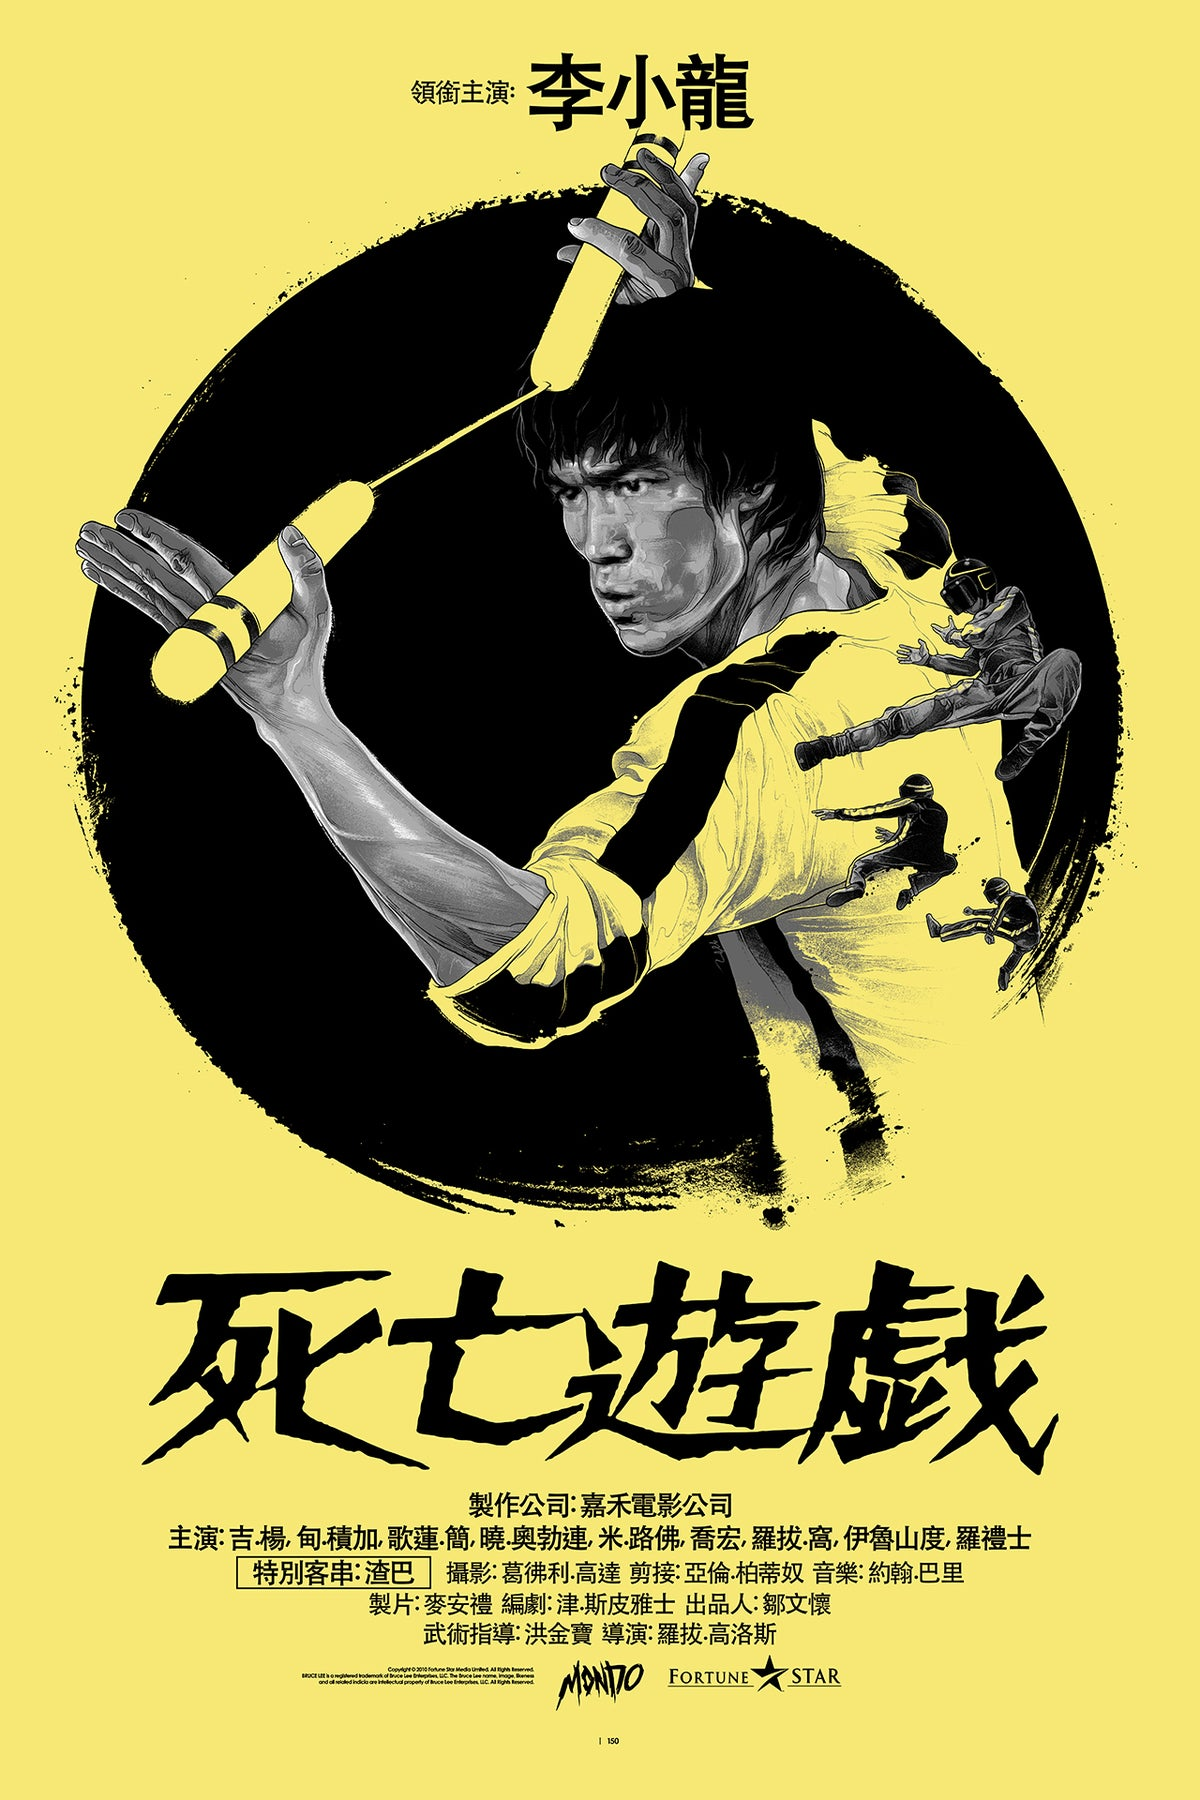 Image of Game of Death Variant 1